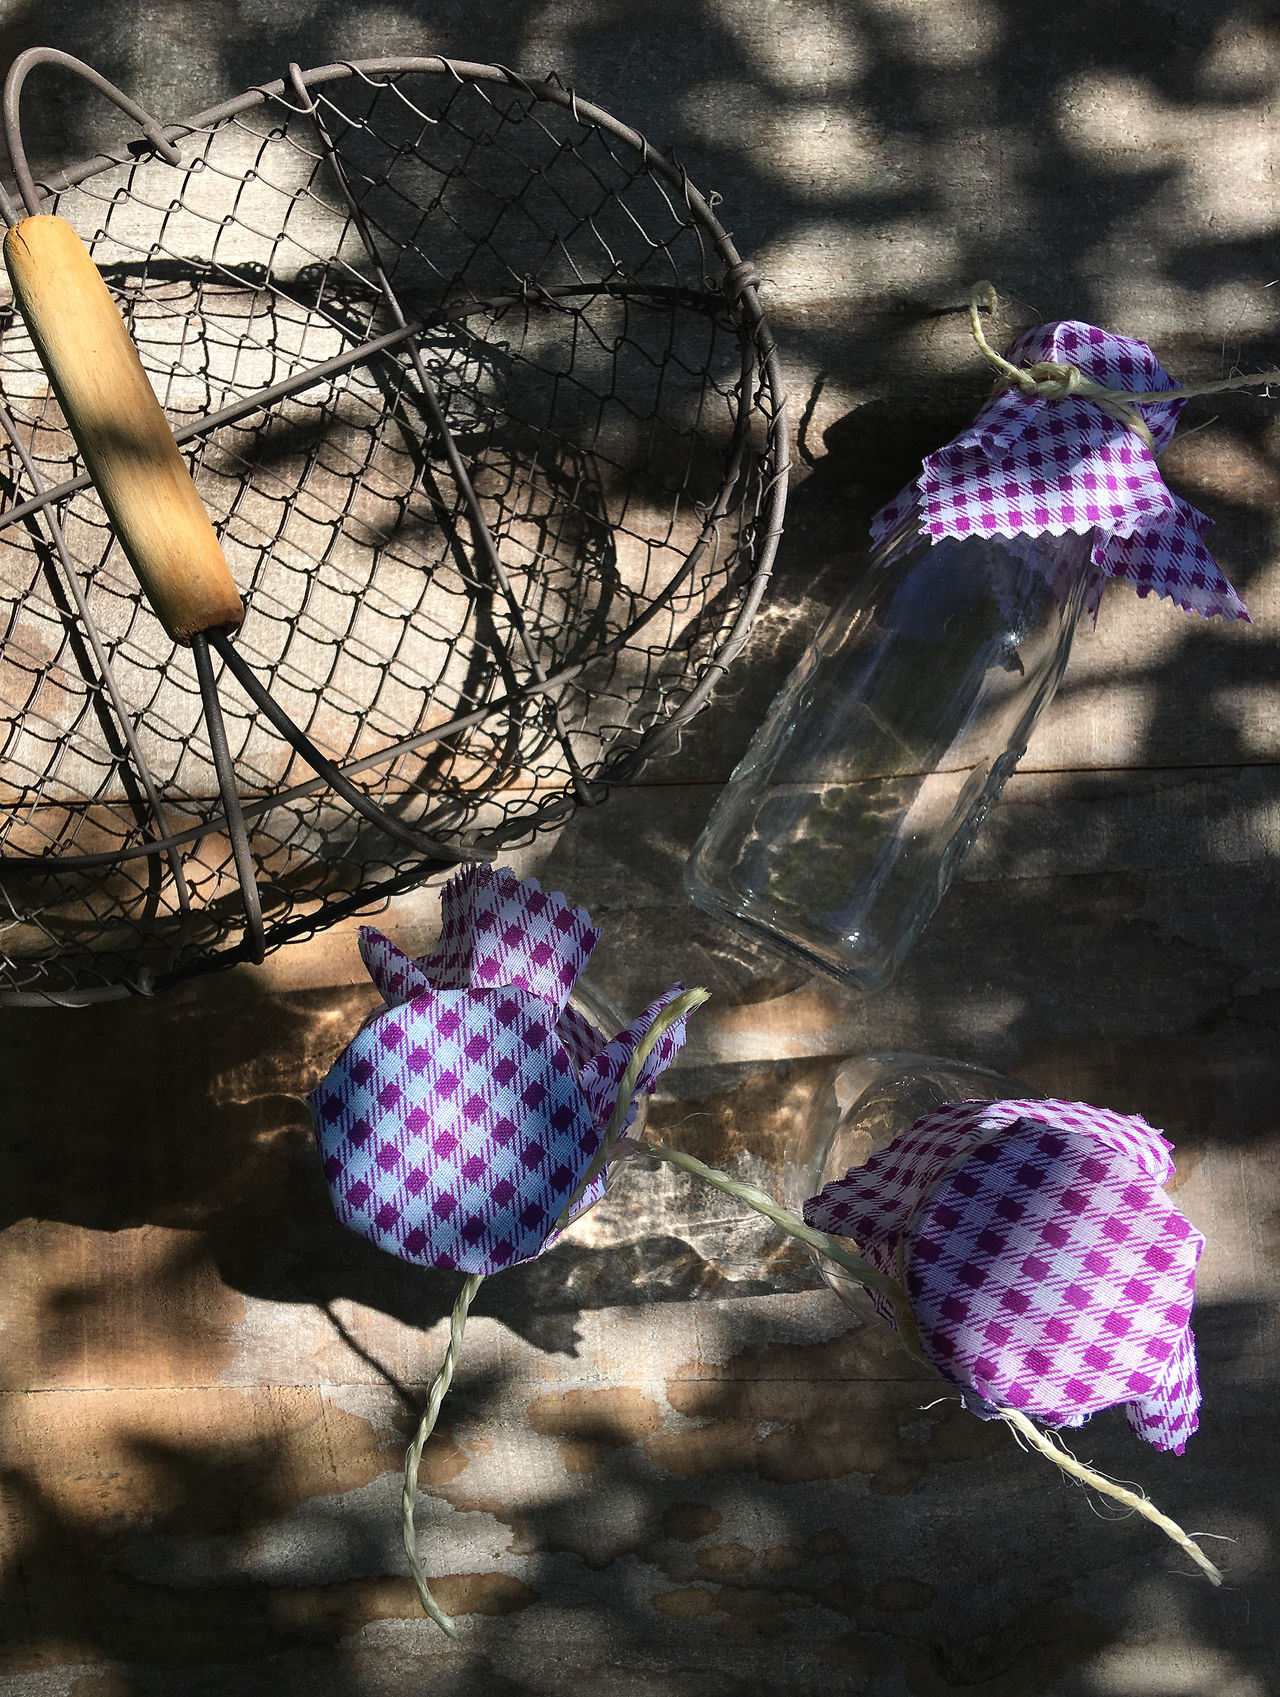 Three Bottles And Basket Basket Bottle Checked Pattern Close-up Color Image Day Directly Above Four Objects Glass - Material Nature No People Outdoors Photography Purple Shabby Chic Shadow Still Life Sunlight Table Tied Vertical Wood - Material